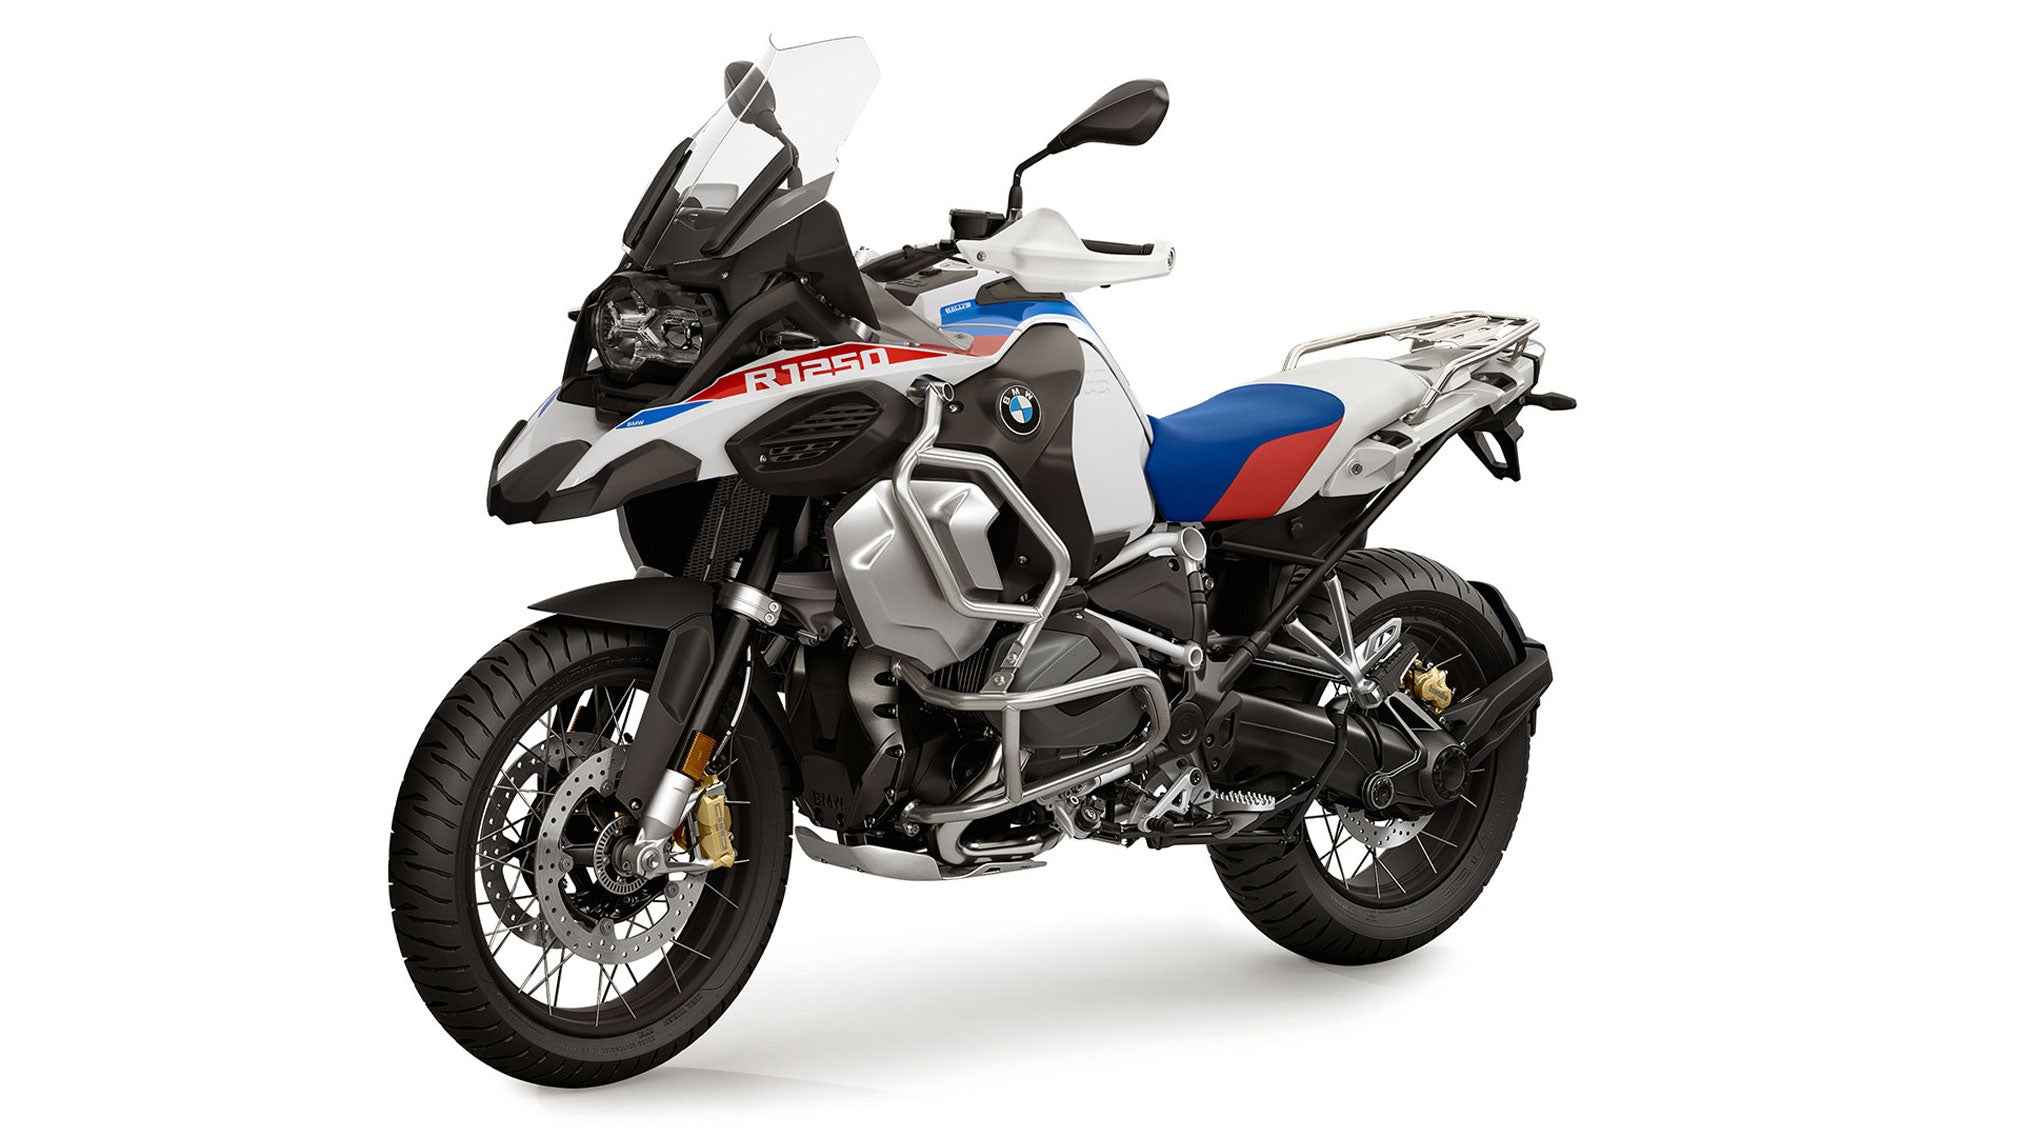 2021 BMW R 1250 GS & R 1250 GS Adventure: What Changed?